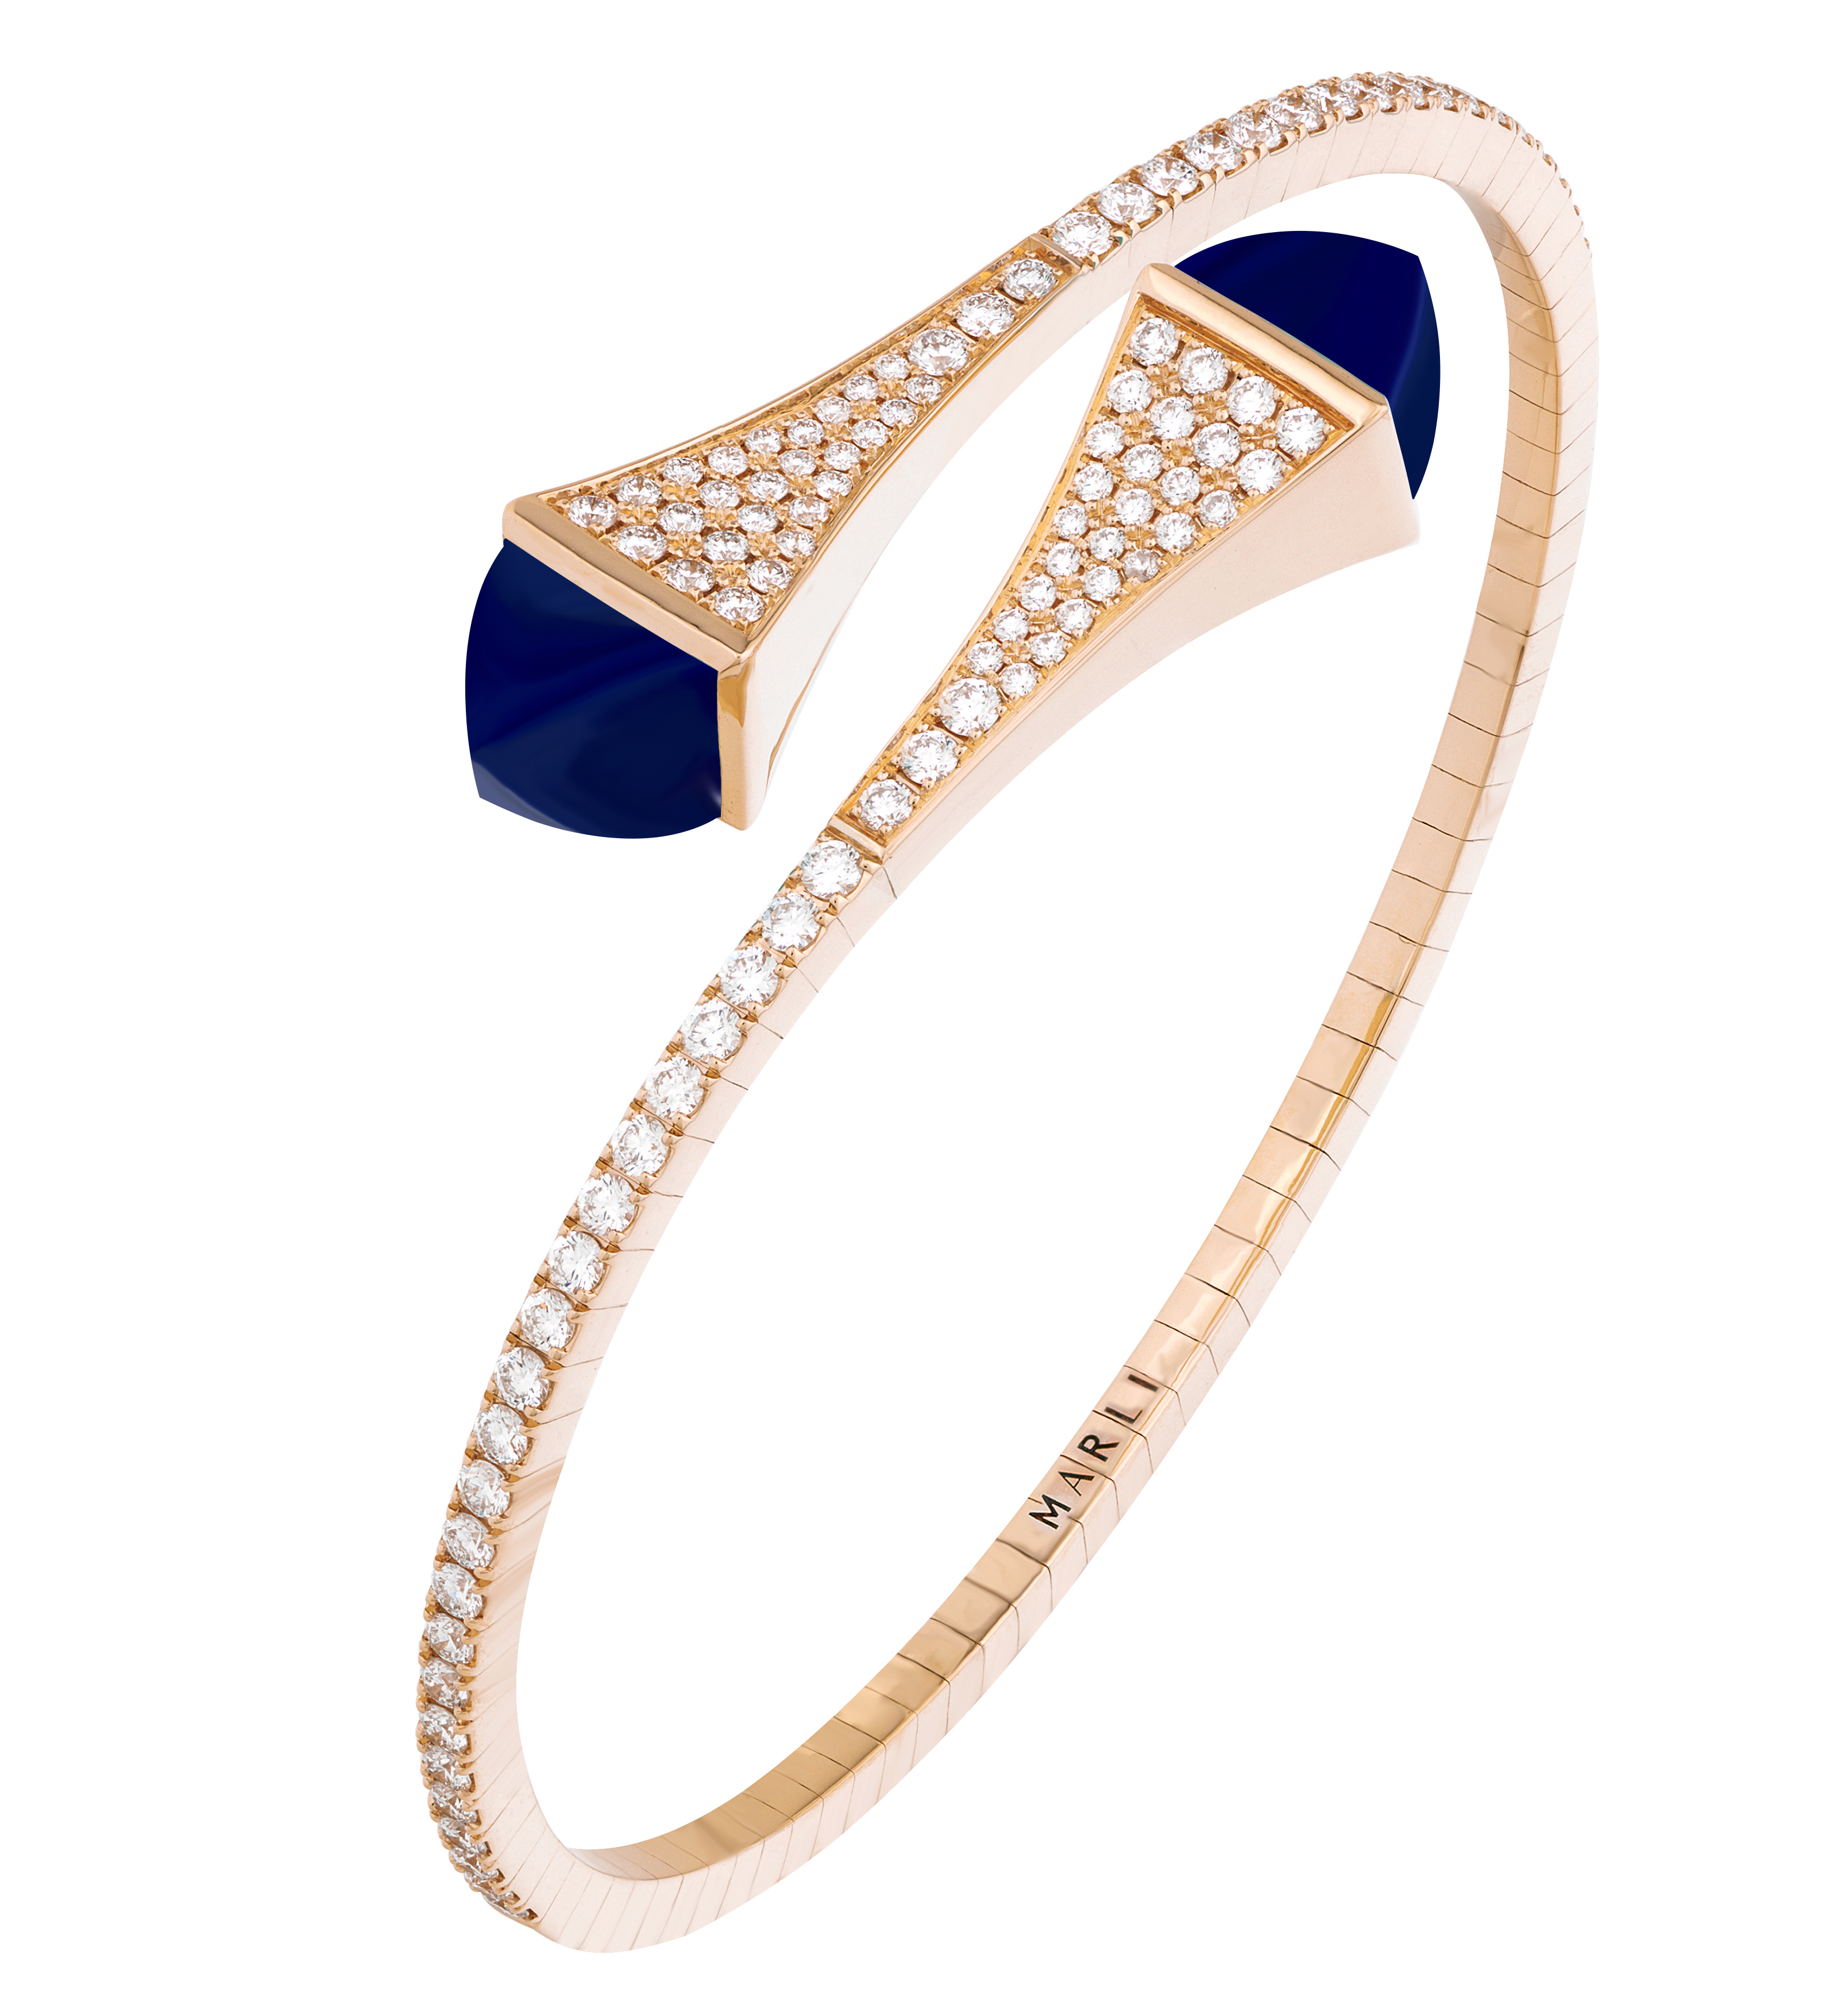 Marli Cleo lapis bracelet | JCK On Your Market